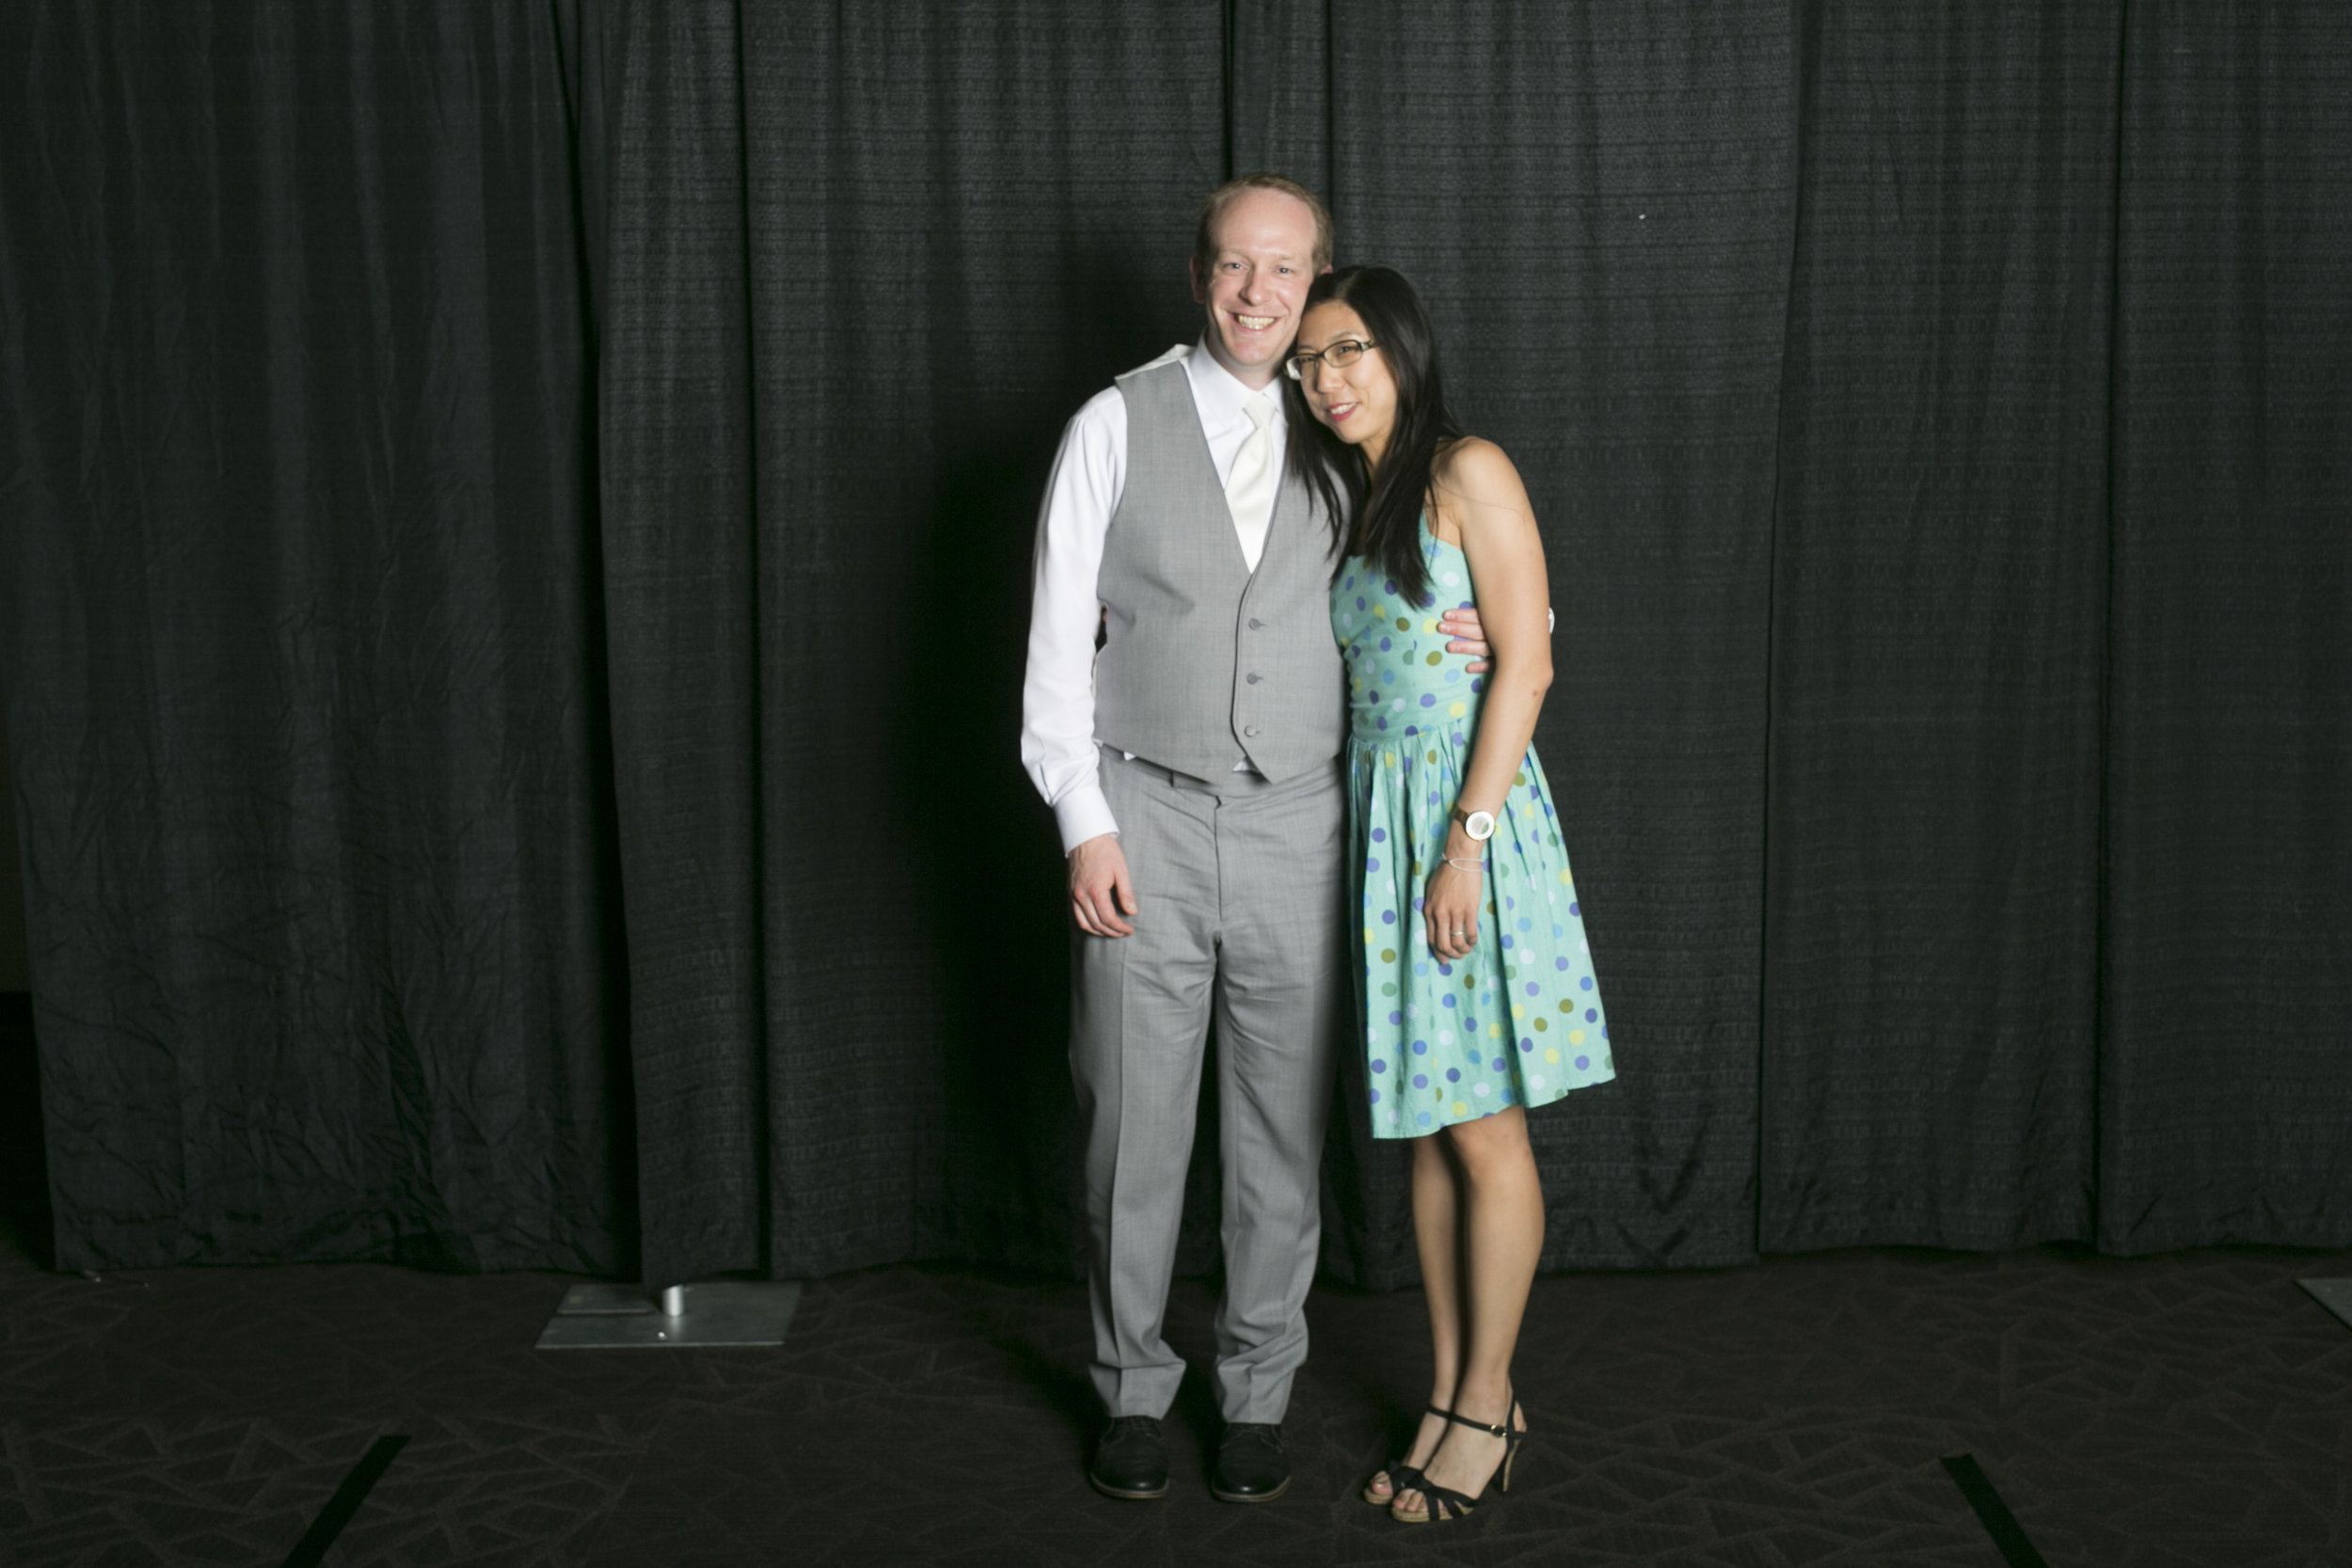 wedding photo booth-43.jpg